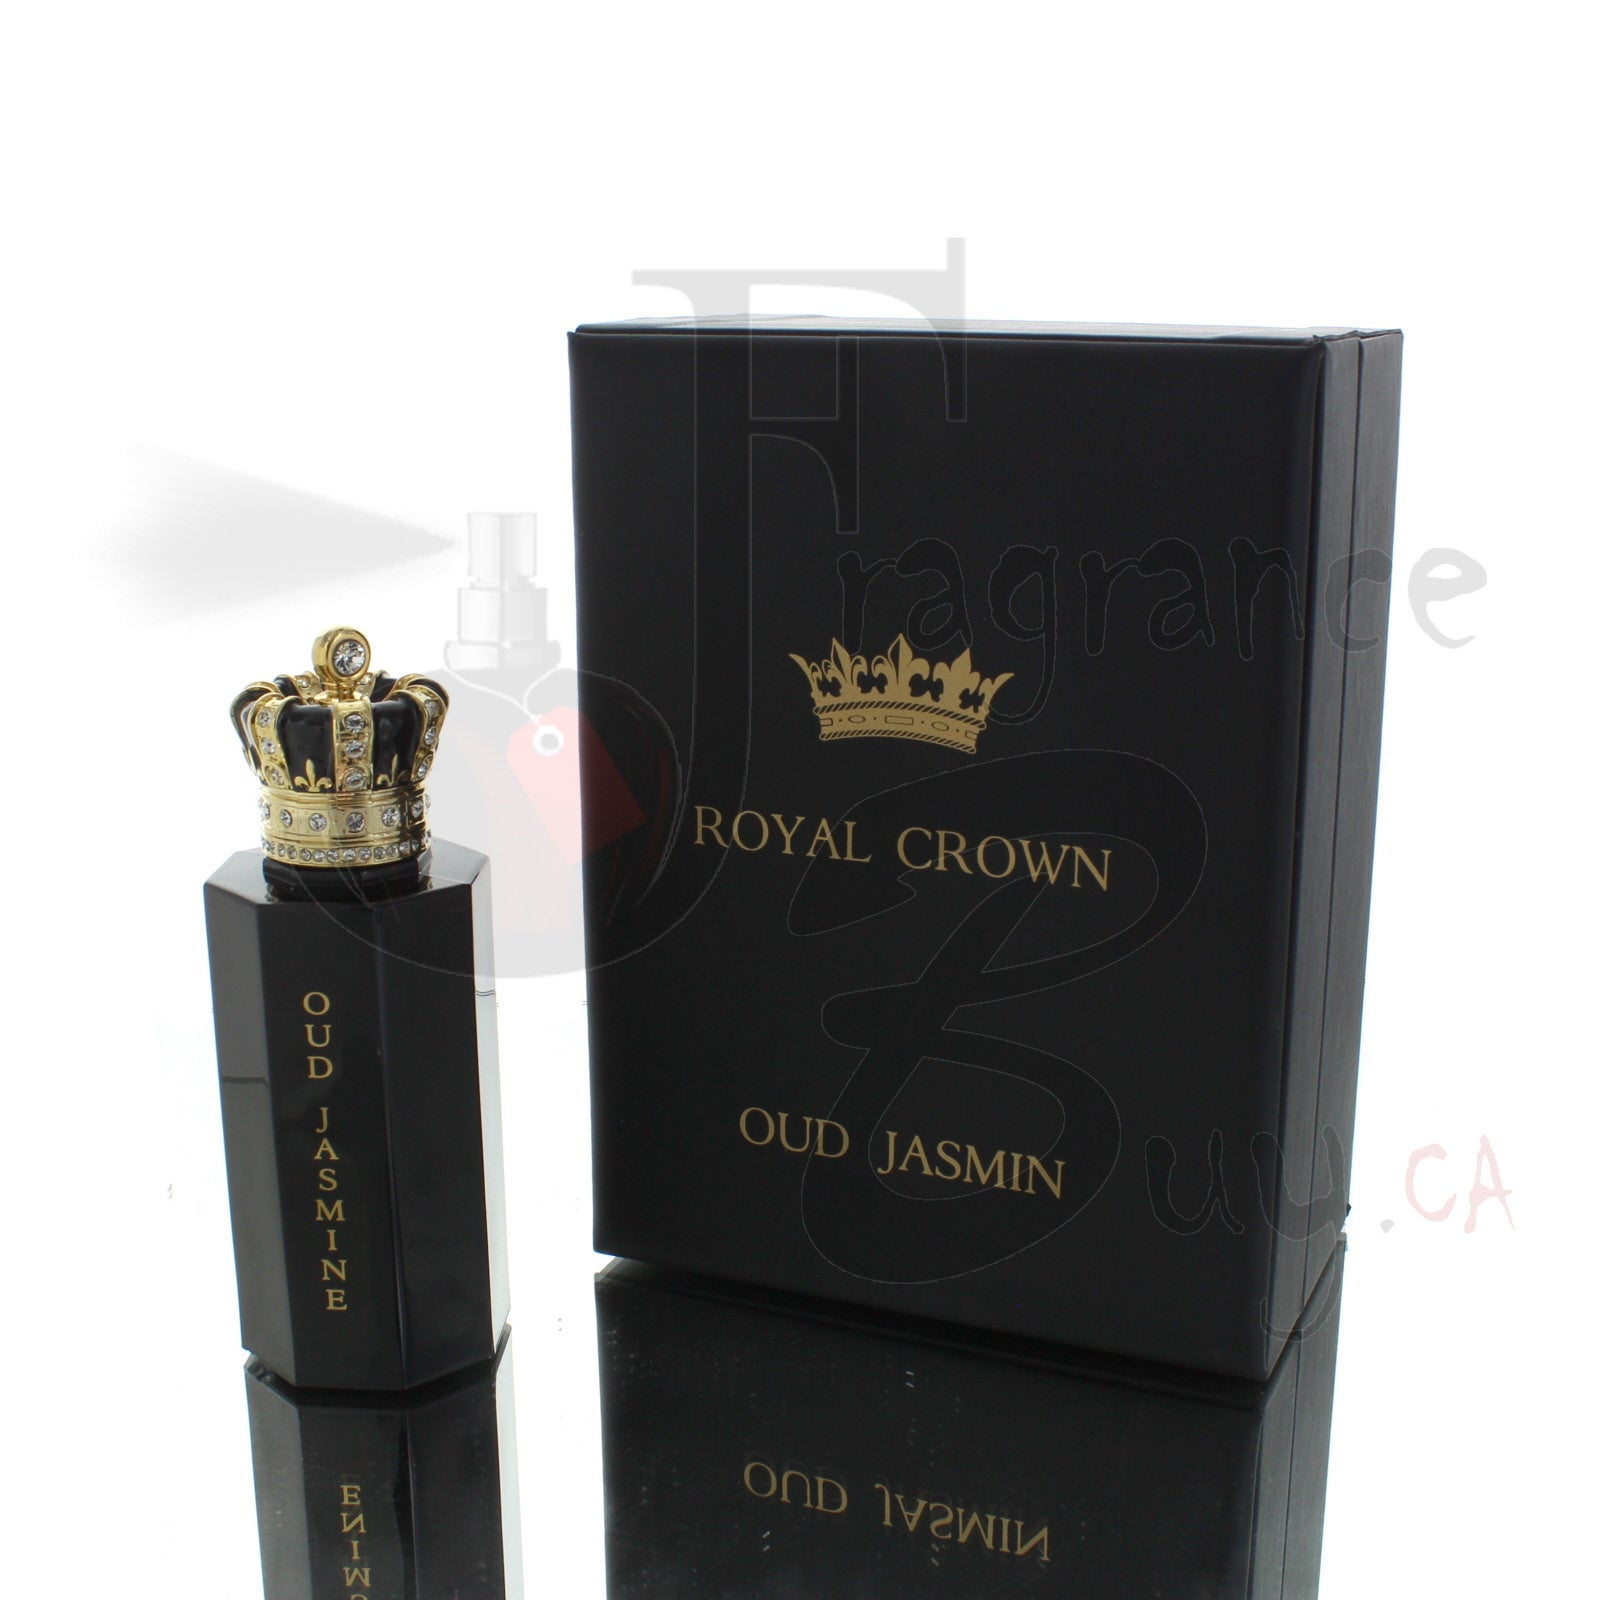 Royal Crown Oud Jasmine For Man/Woman